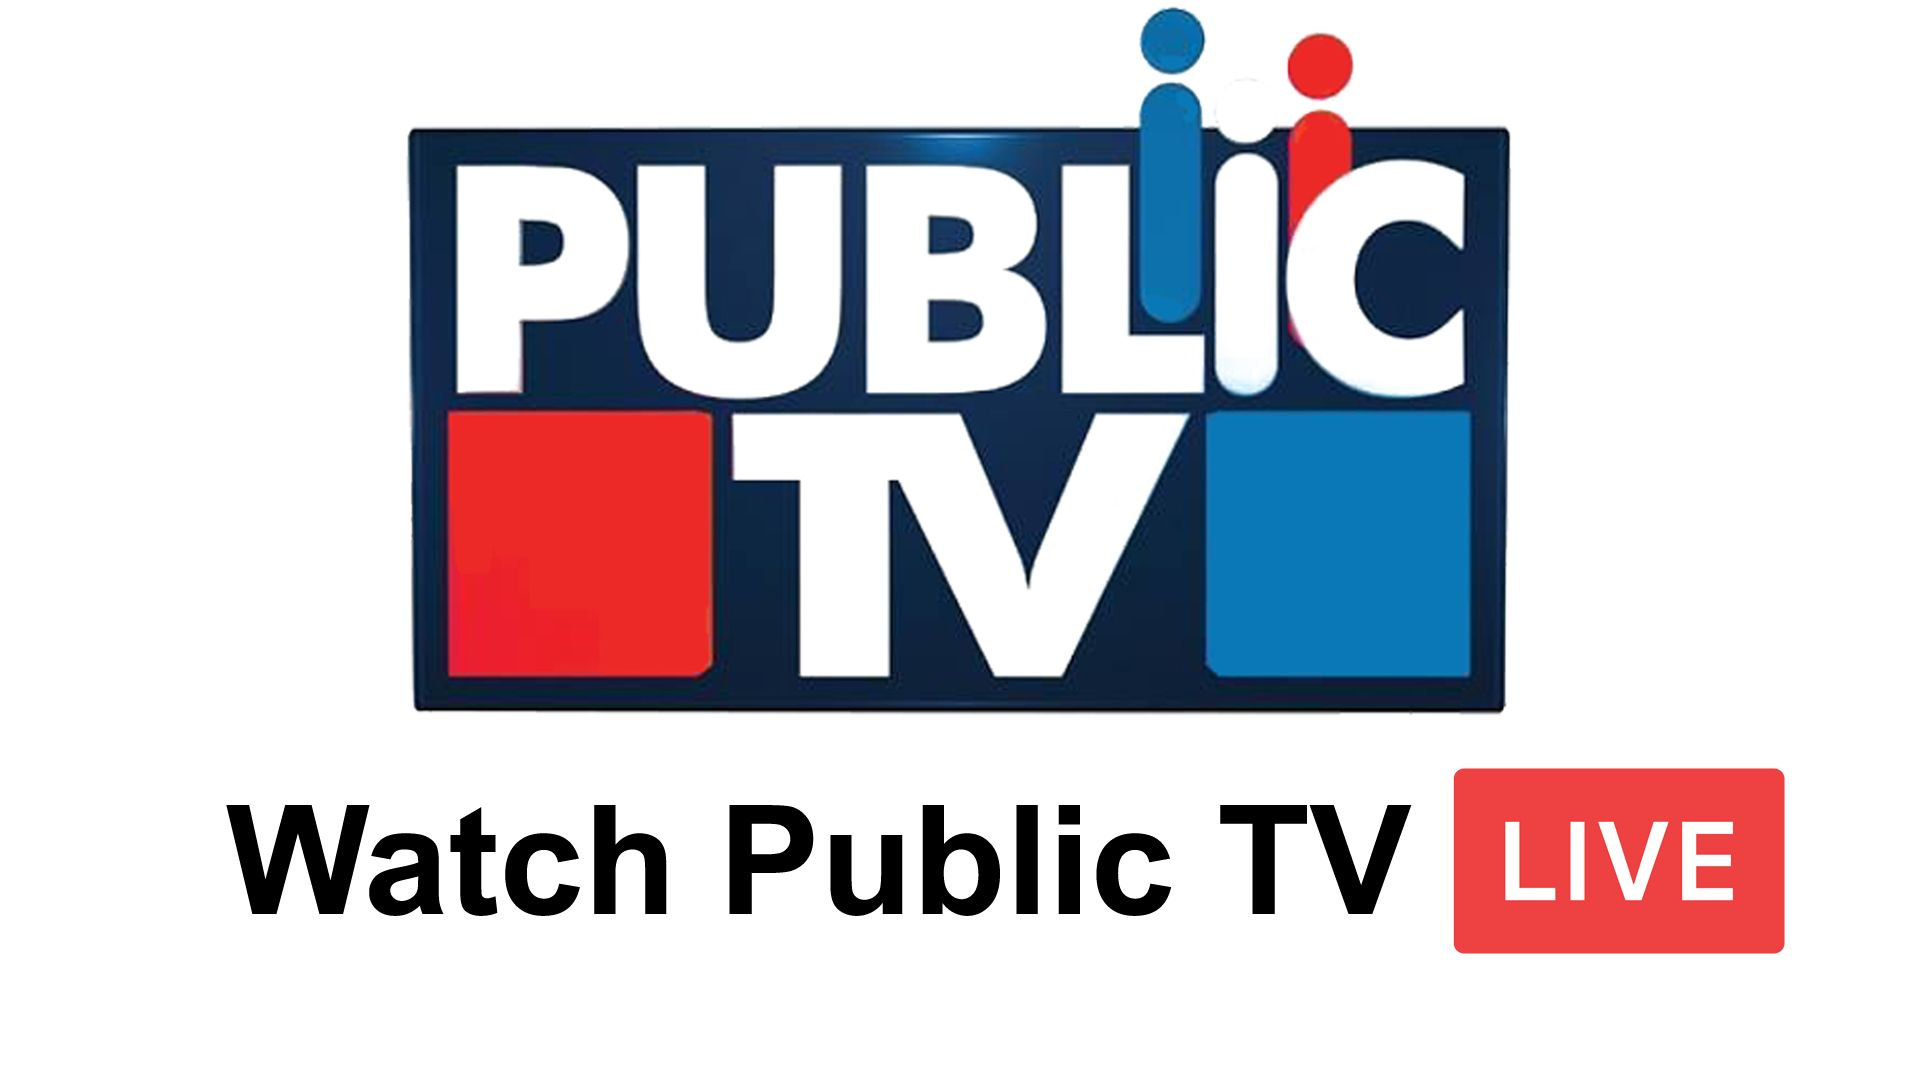 Public Tv Channel Owned By Writemen Media Pvt Ltd Which Headquarters Also Located In Ttmc Building Bmtc Yeshw Online Tv Channels Watch Live Tv Online Public